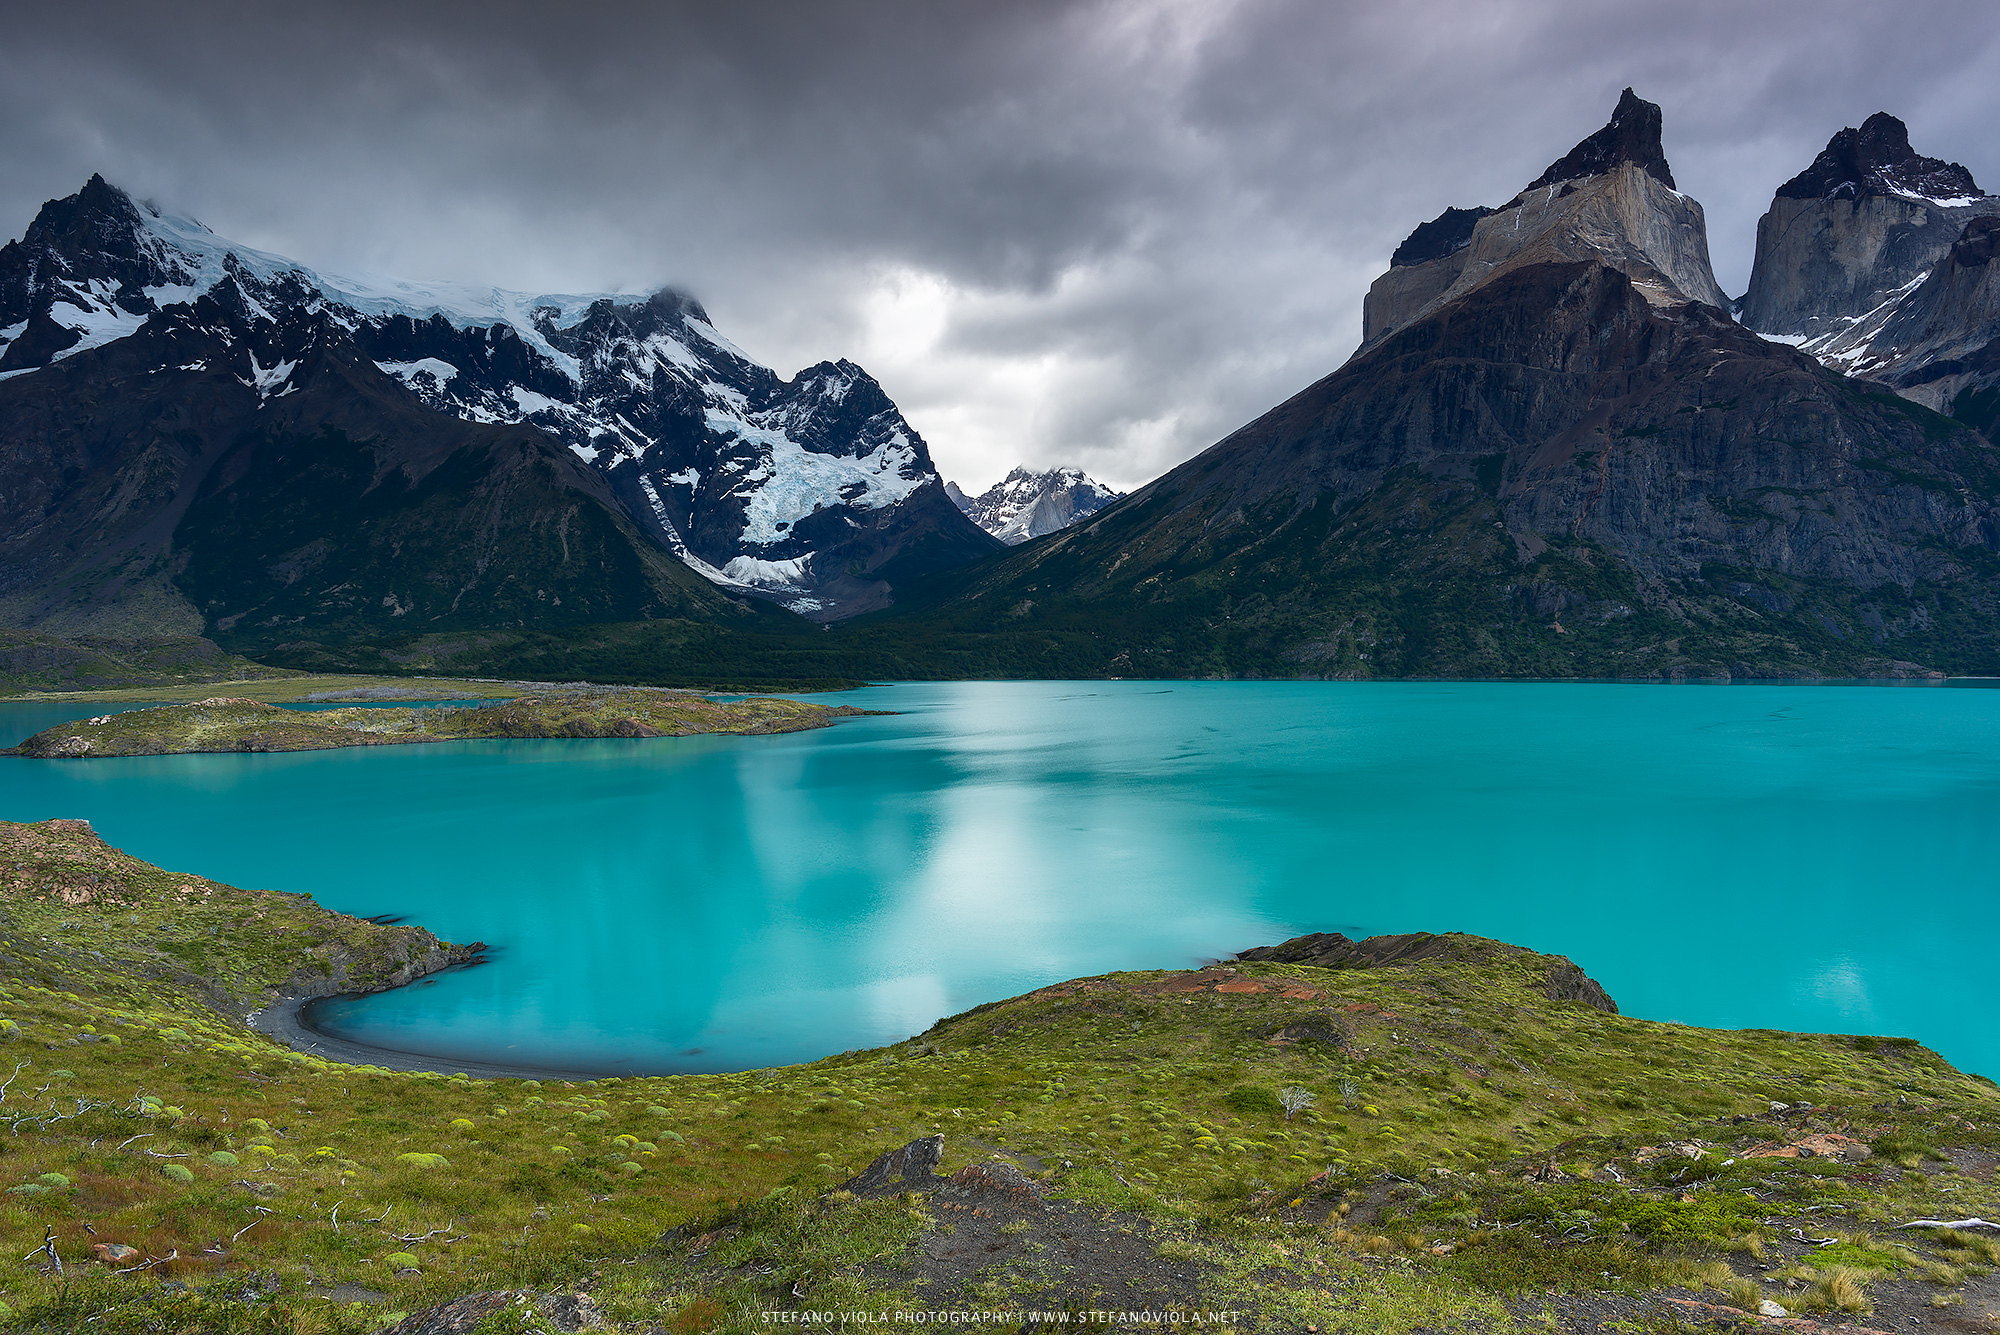 Patagonia | land of fire